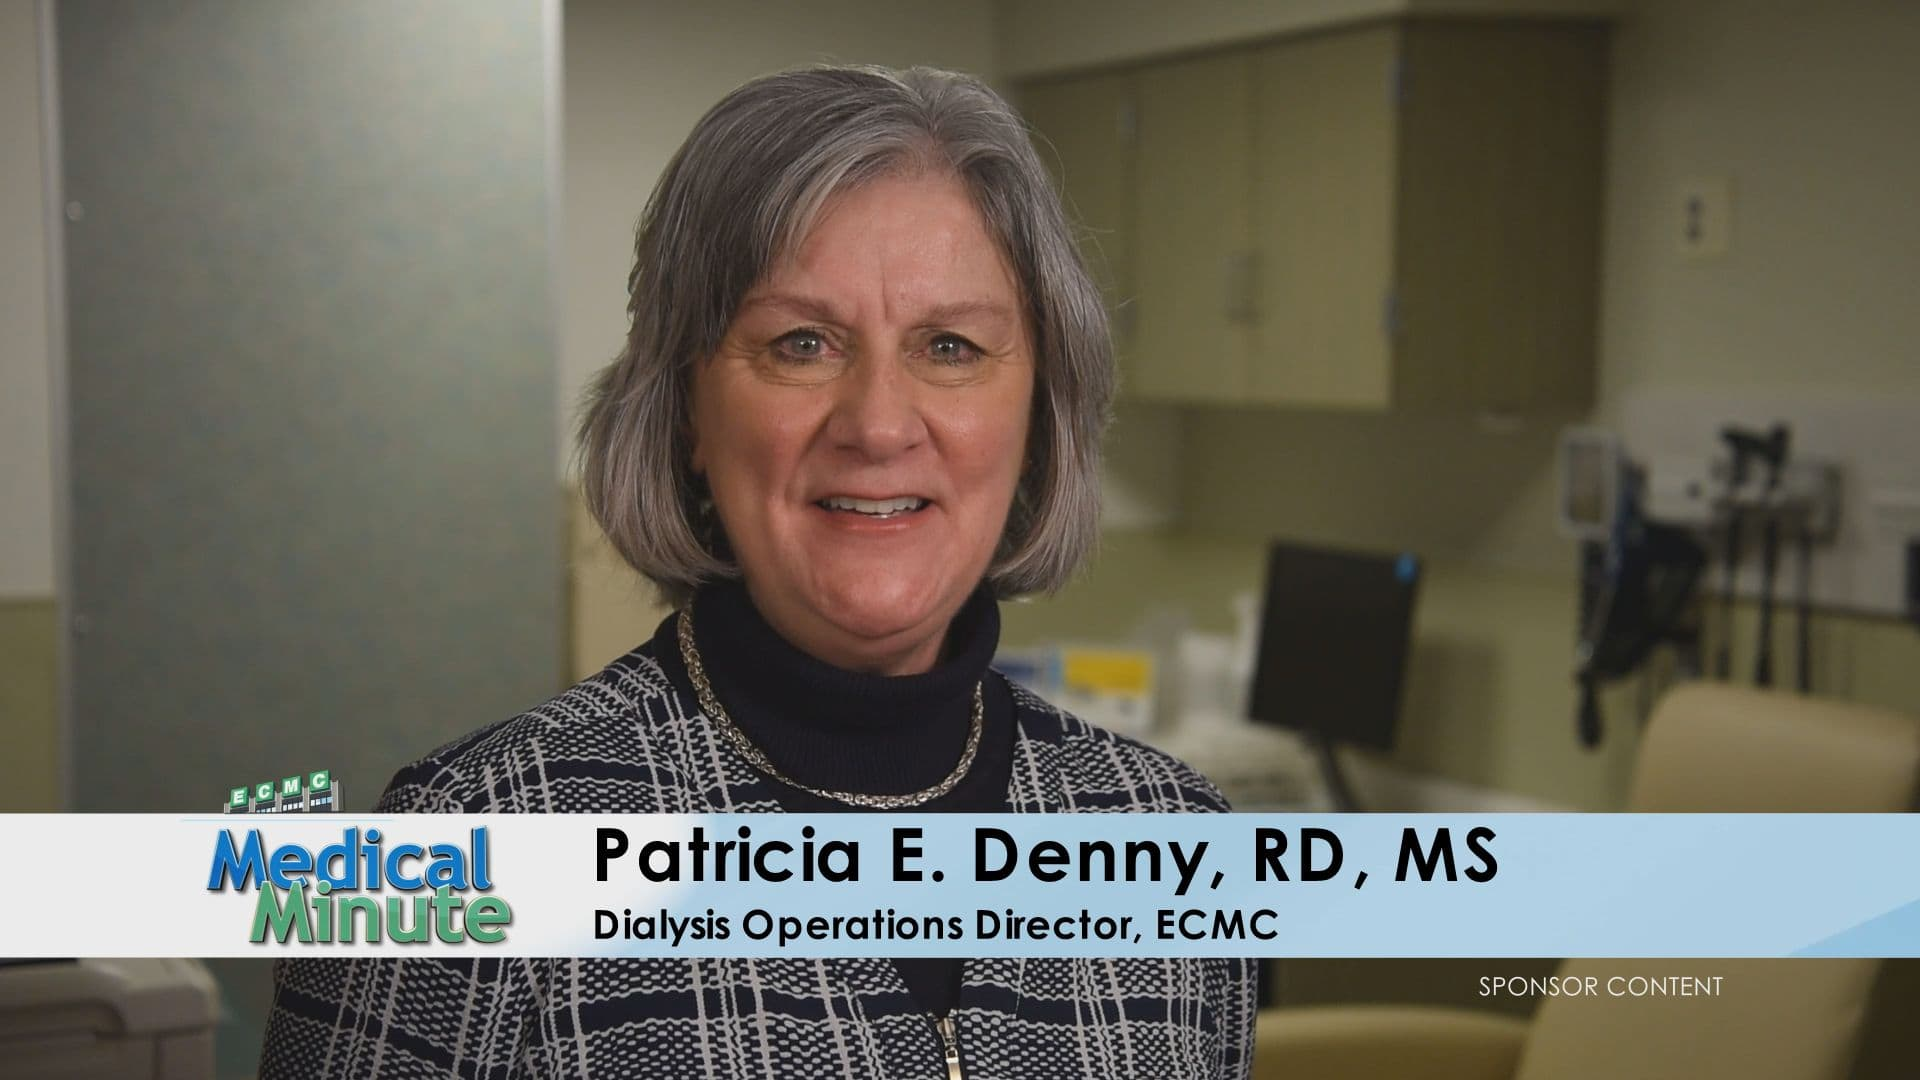 ECMCMedicalMinute PatriciaDenny,RD,MS KidneyDiseasePatientEducationSessions 021119